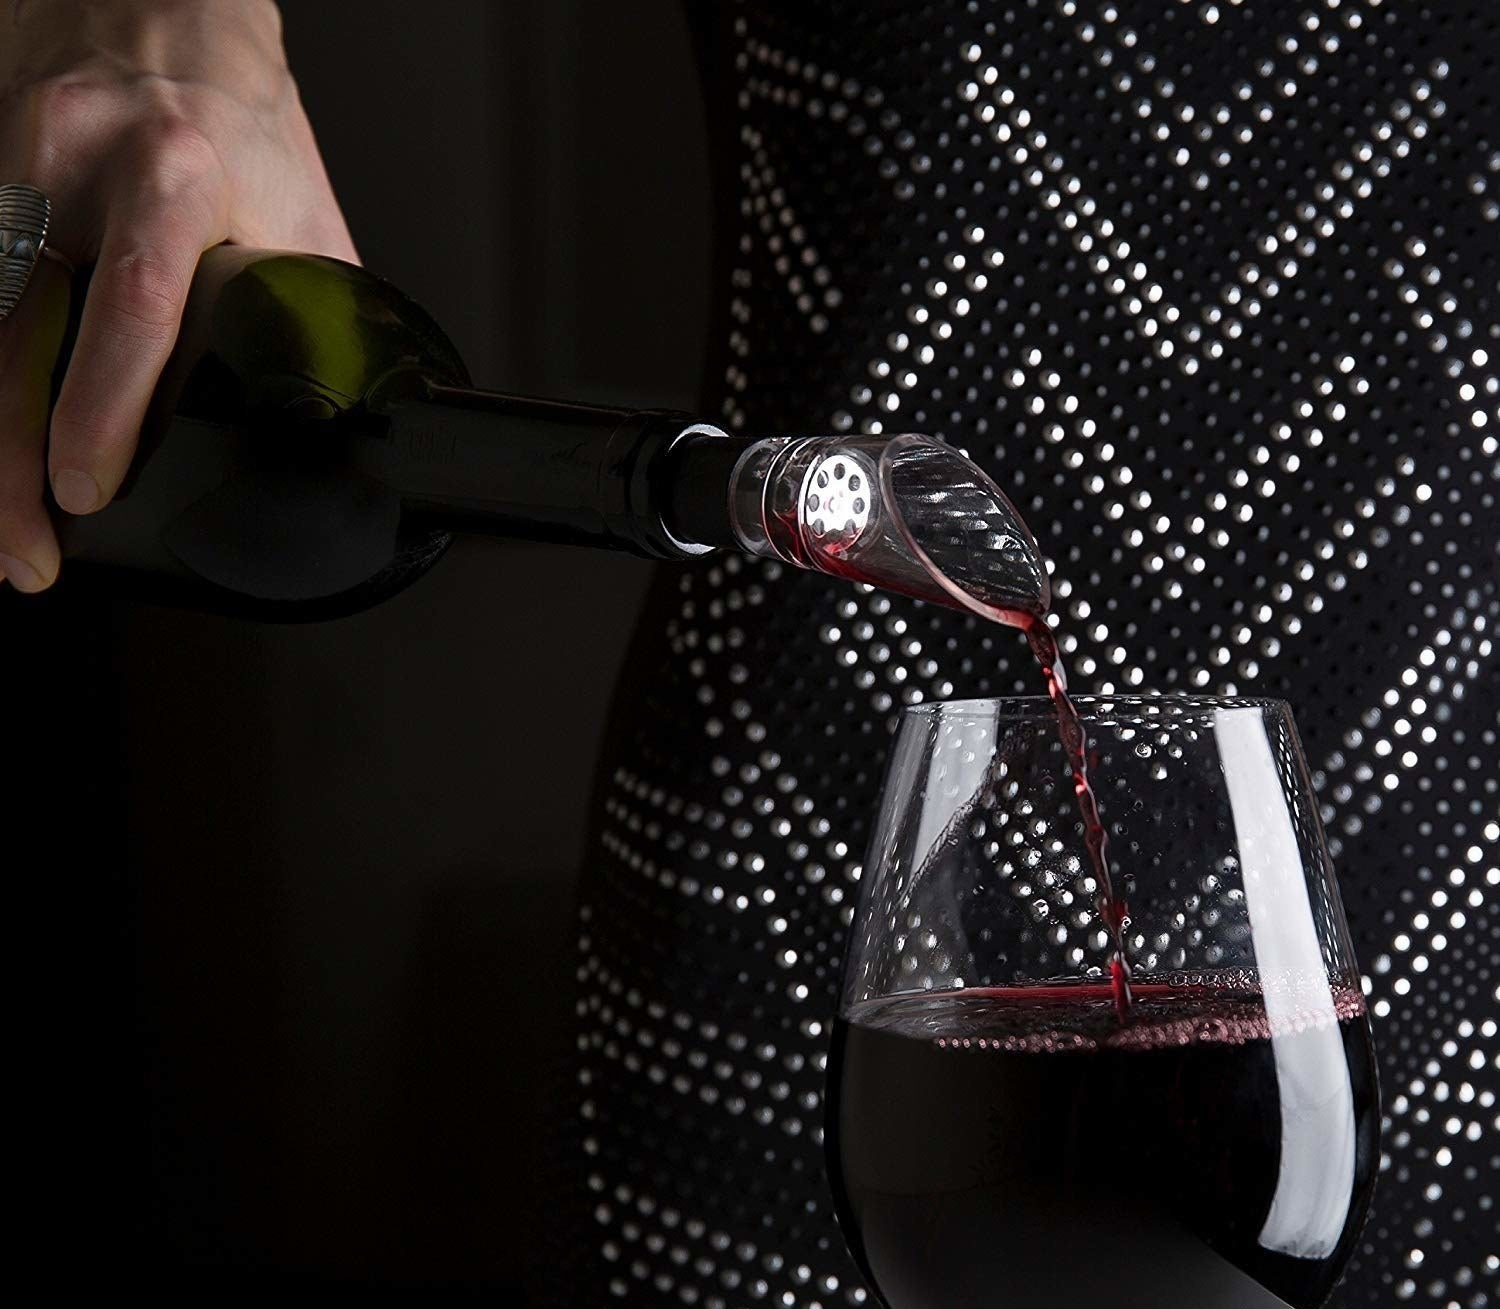 Wine being poured out with the decanter